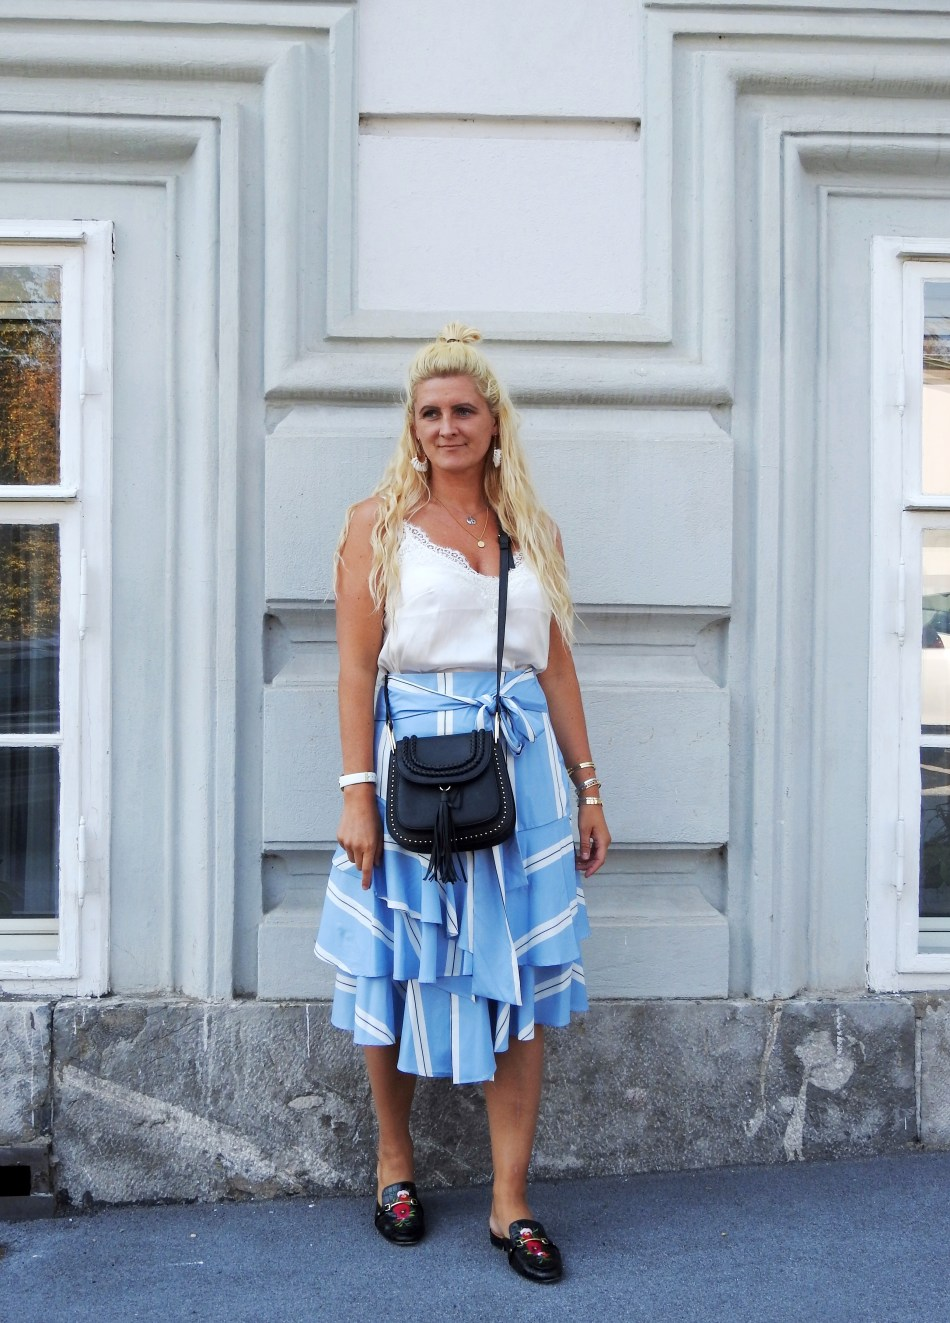 Volant-Skirt-Mules-Gucci-Chloe-Bag-Look-Alike-carrieslifestyle-Tamara-Prutsch